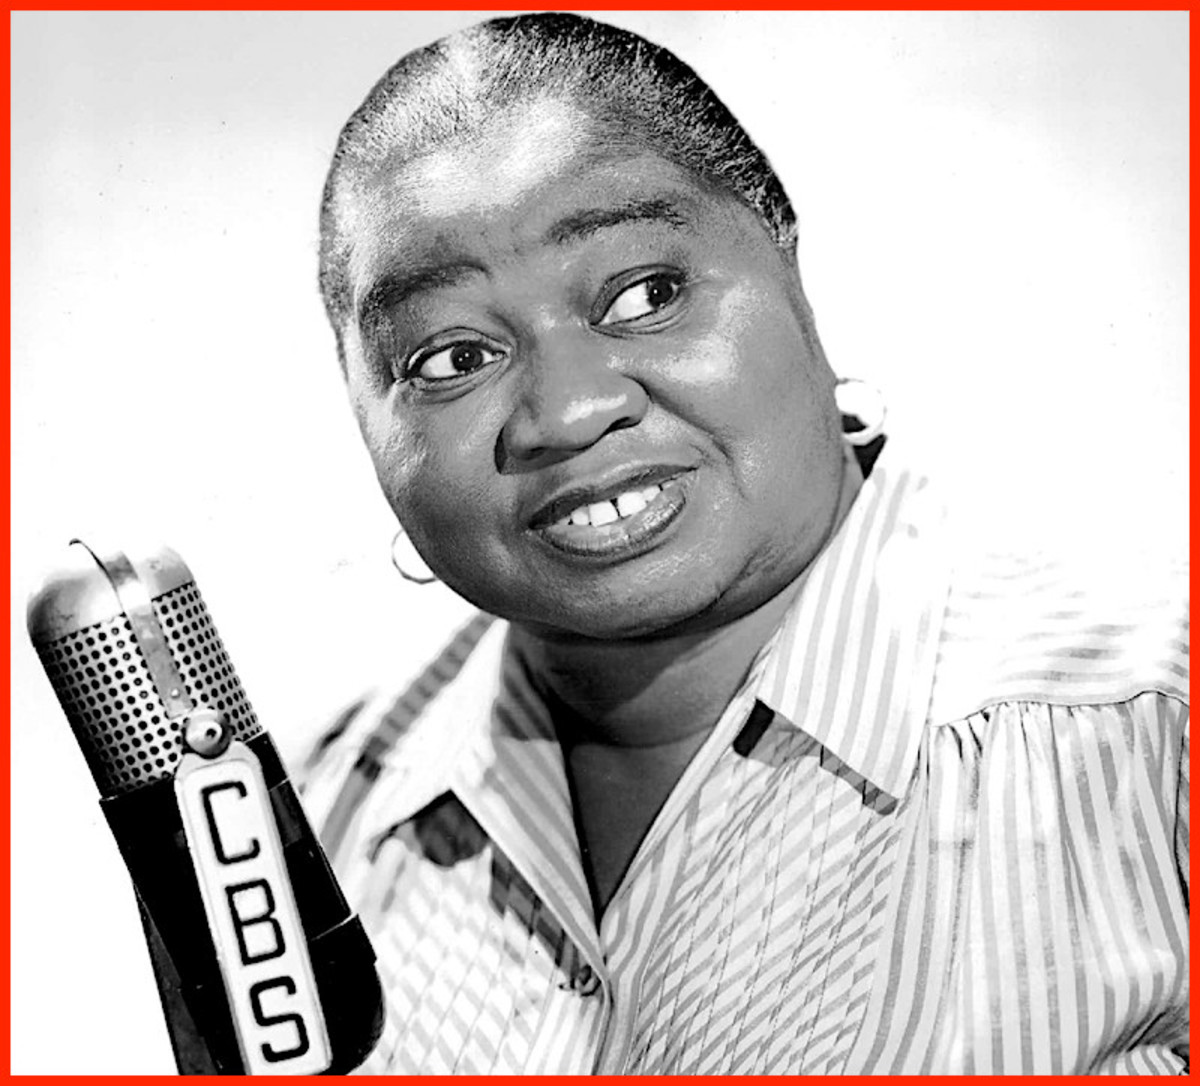 Before she became famous for being the first African-American to win an Oscar, Hattie McDaniel had a successful career as a singer and songwriter on radio.